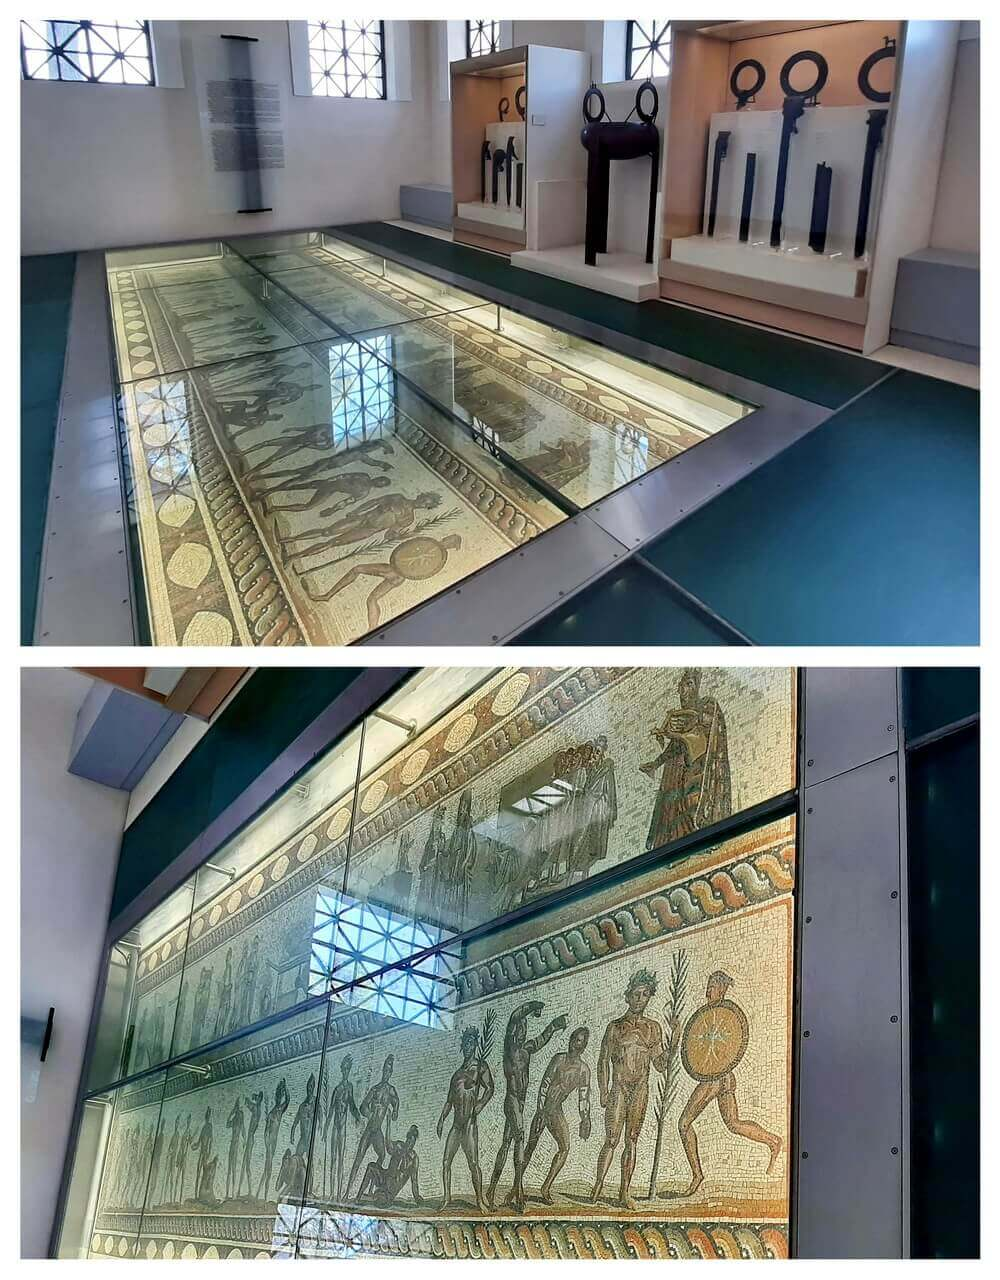 Mosaic, Museum of the history of the Olympic Game